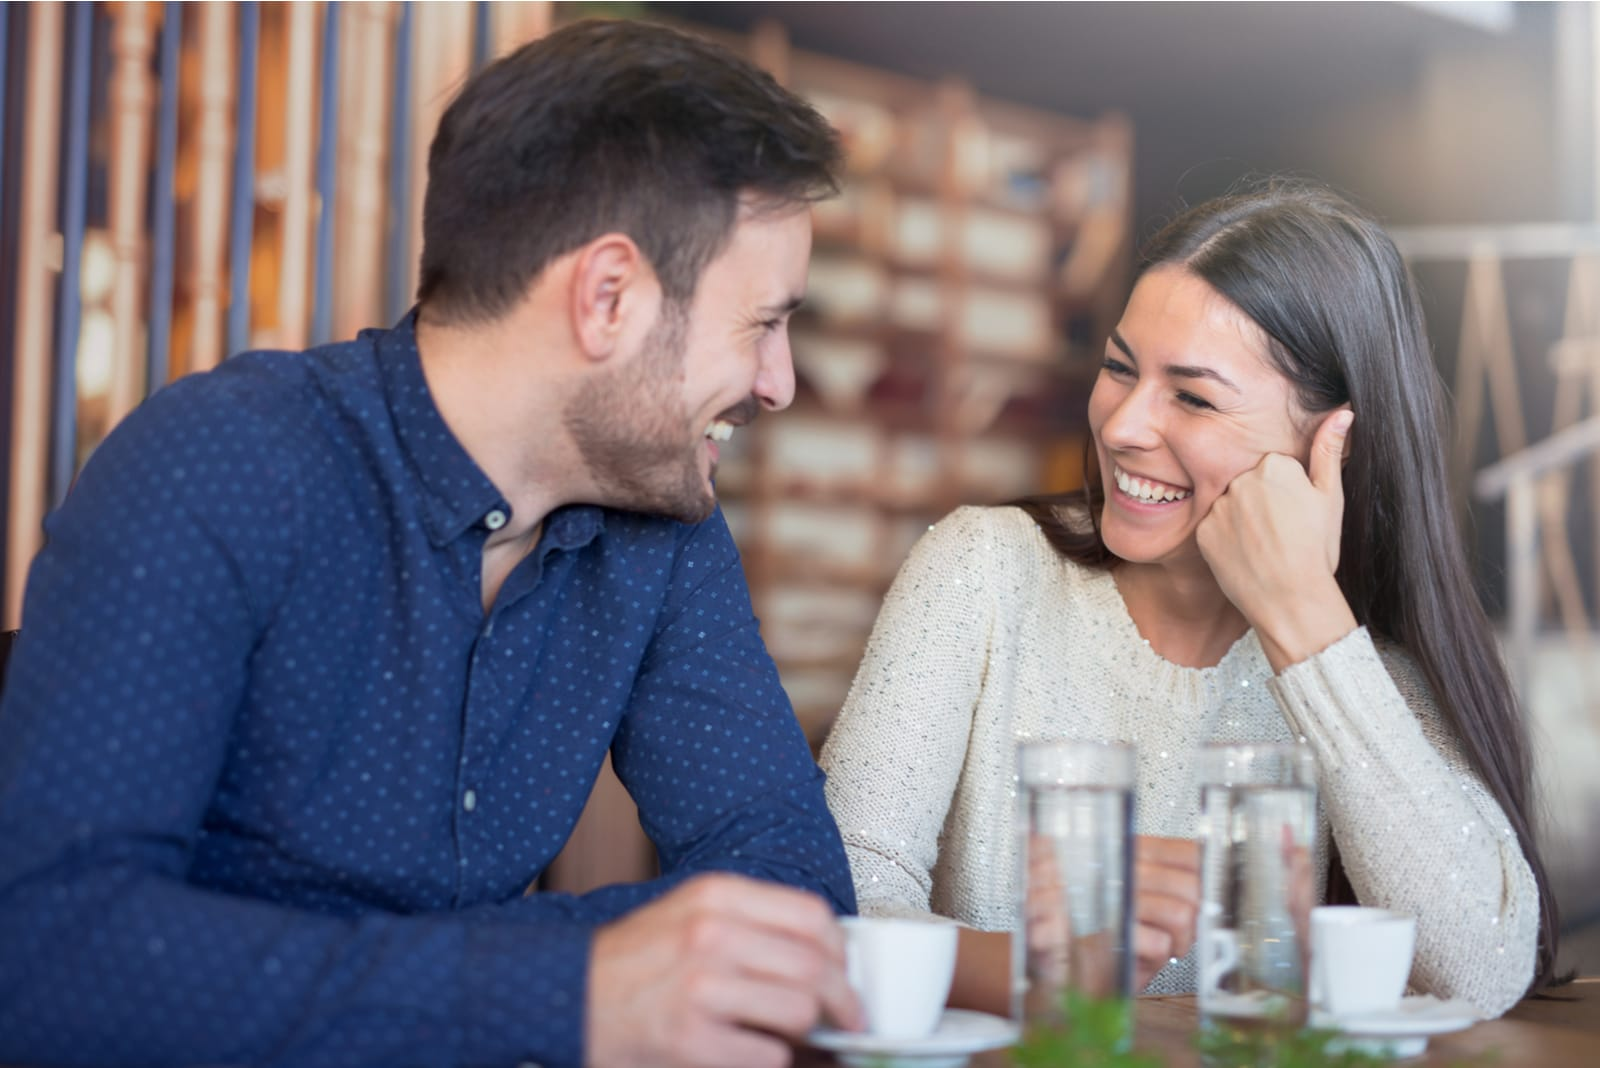 a couple in a cafe flirting and drinking coffee